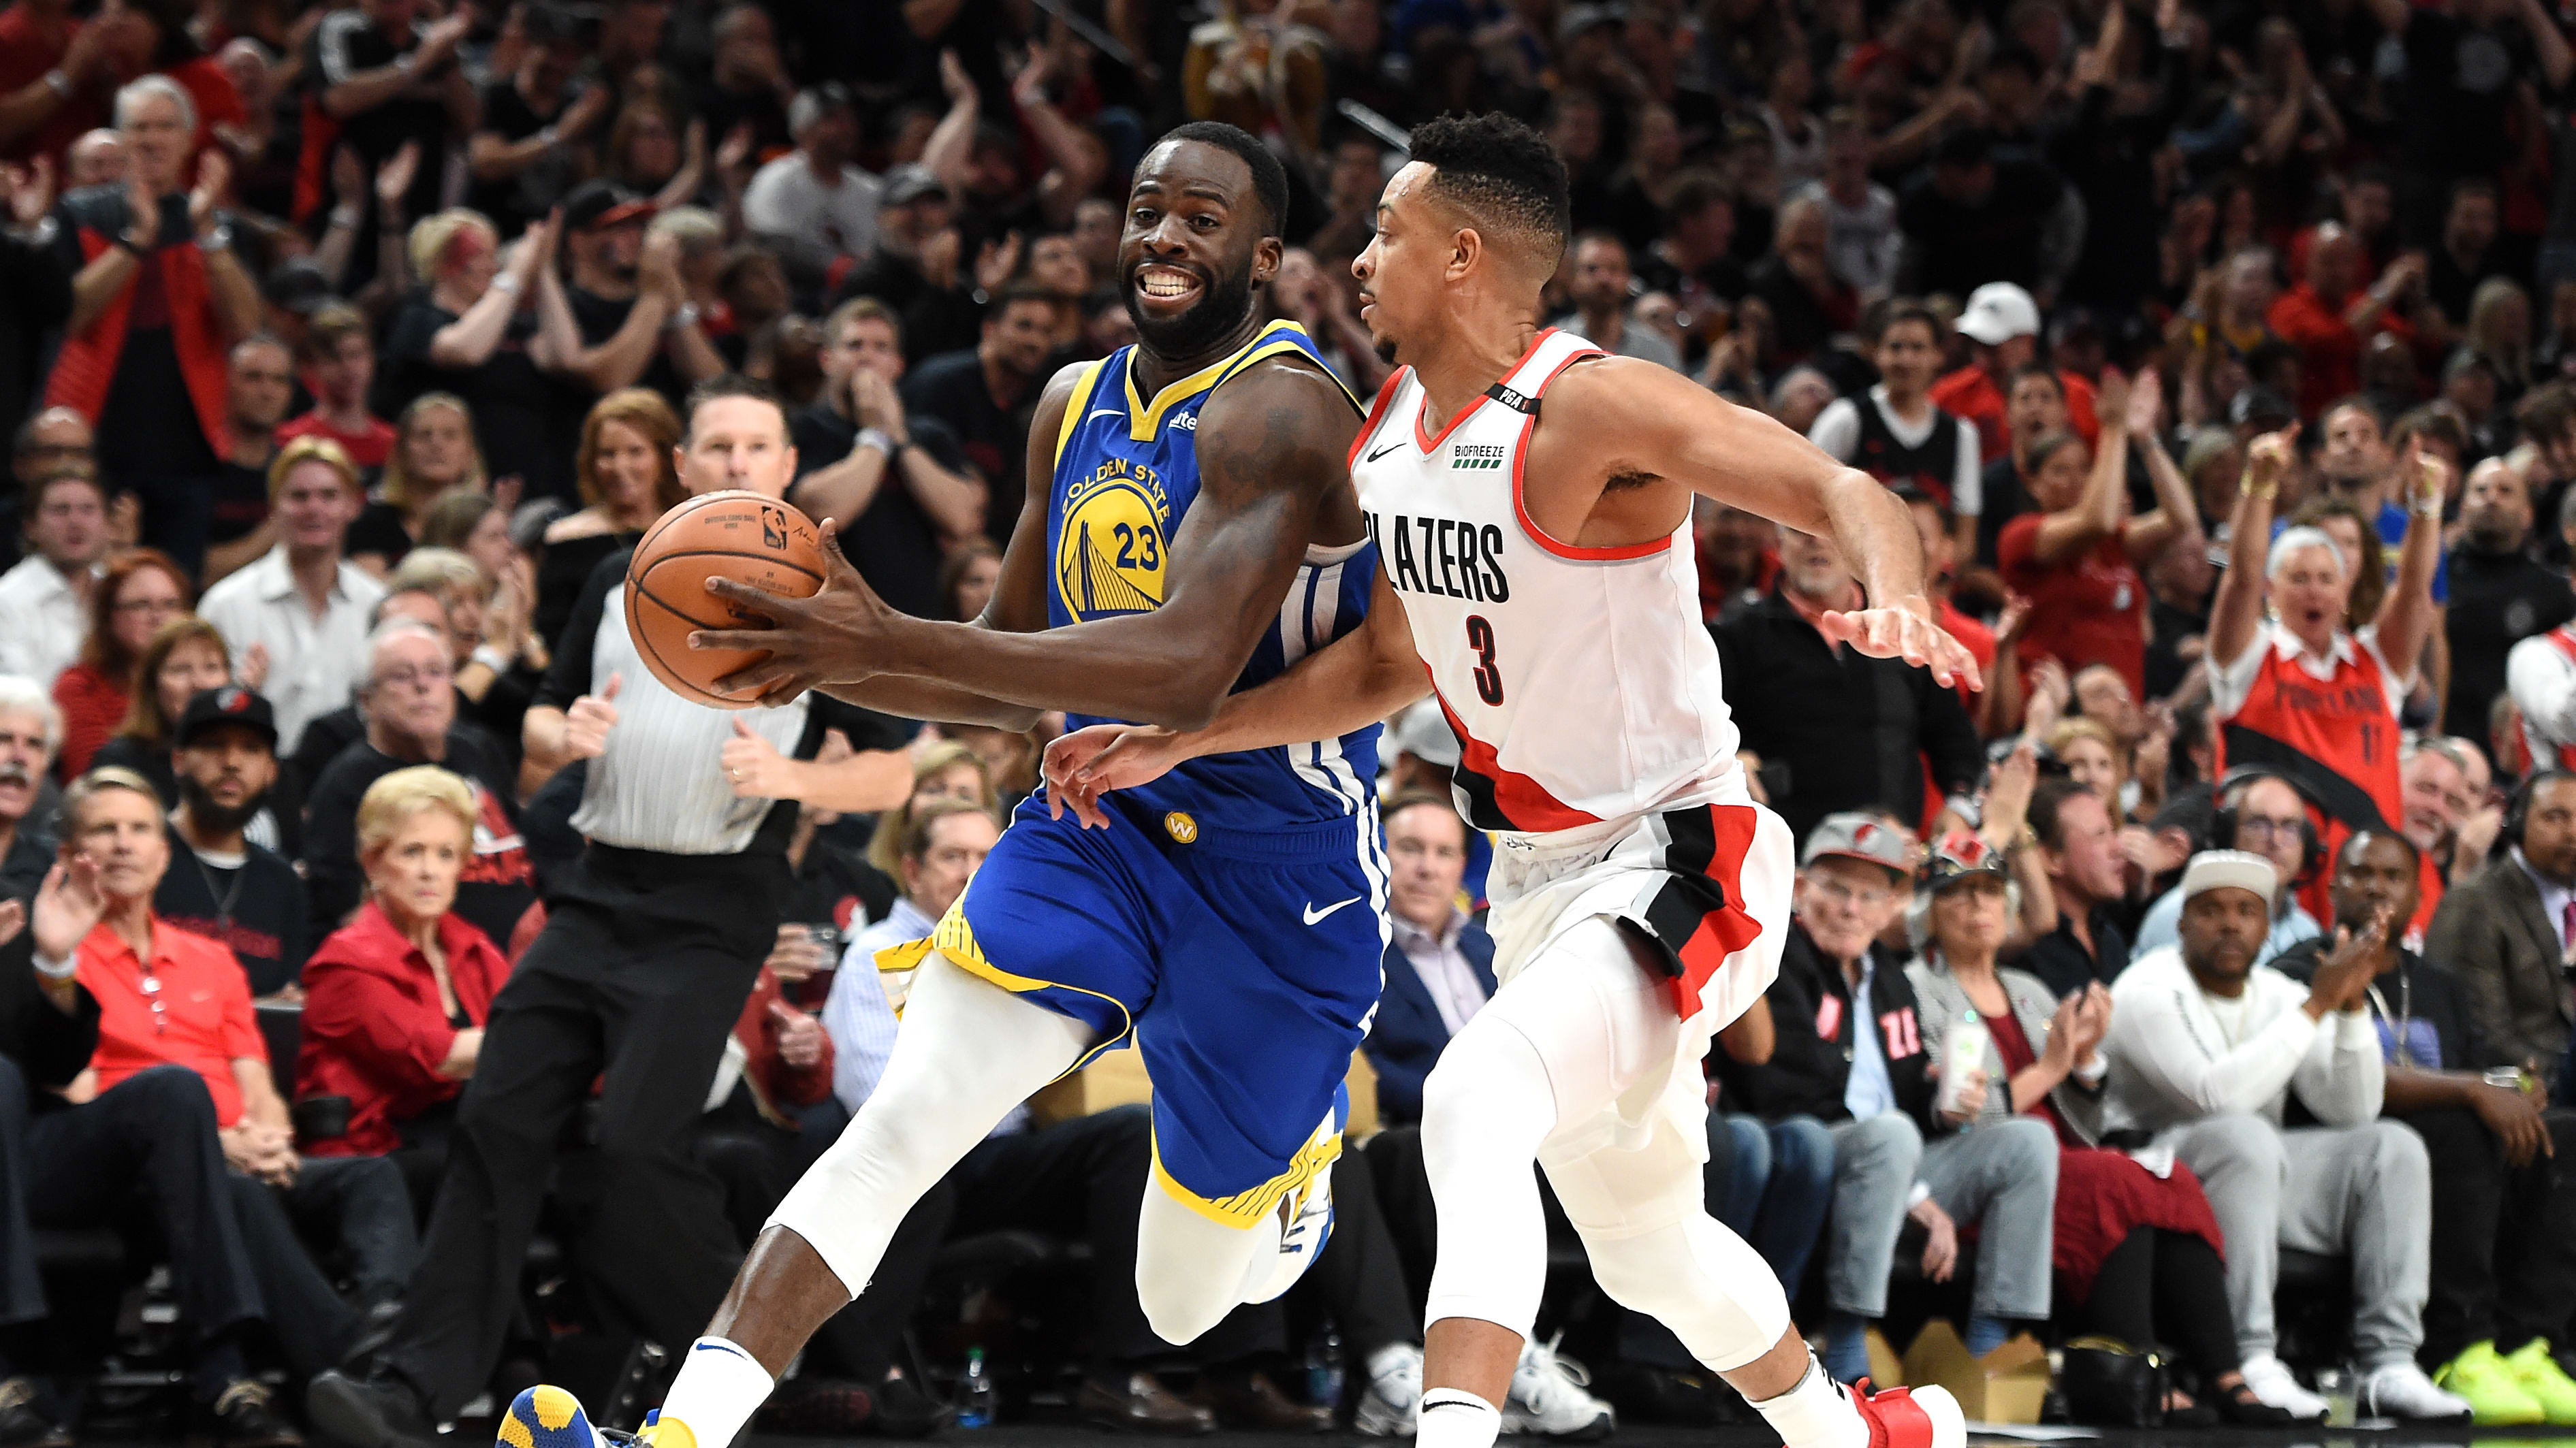 PORTLAND, OREGON - MAY 18: Draymond Green #23 of the Golden State Warriors drives to the basket against CJ McCollum #3 of the Portland Trail Blazers in game three of the NBA Western Conference Finals at Moda Center on May 18, 2019 in Portland, Oregon. NOTE TO USER: User expressly acknowledges and agrees that, by downloading and or using this photograph, User is consenting to the terms and conditions of the Getty Images License Agreement. (Photo by Steve Dykes/Getty Images)